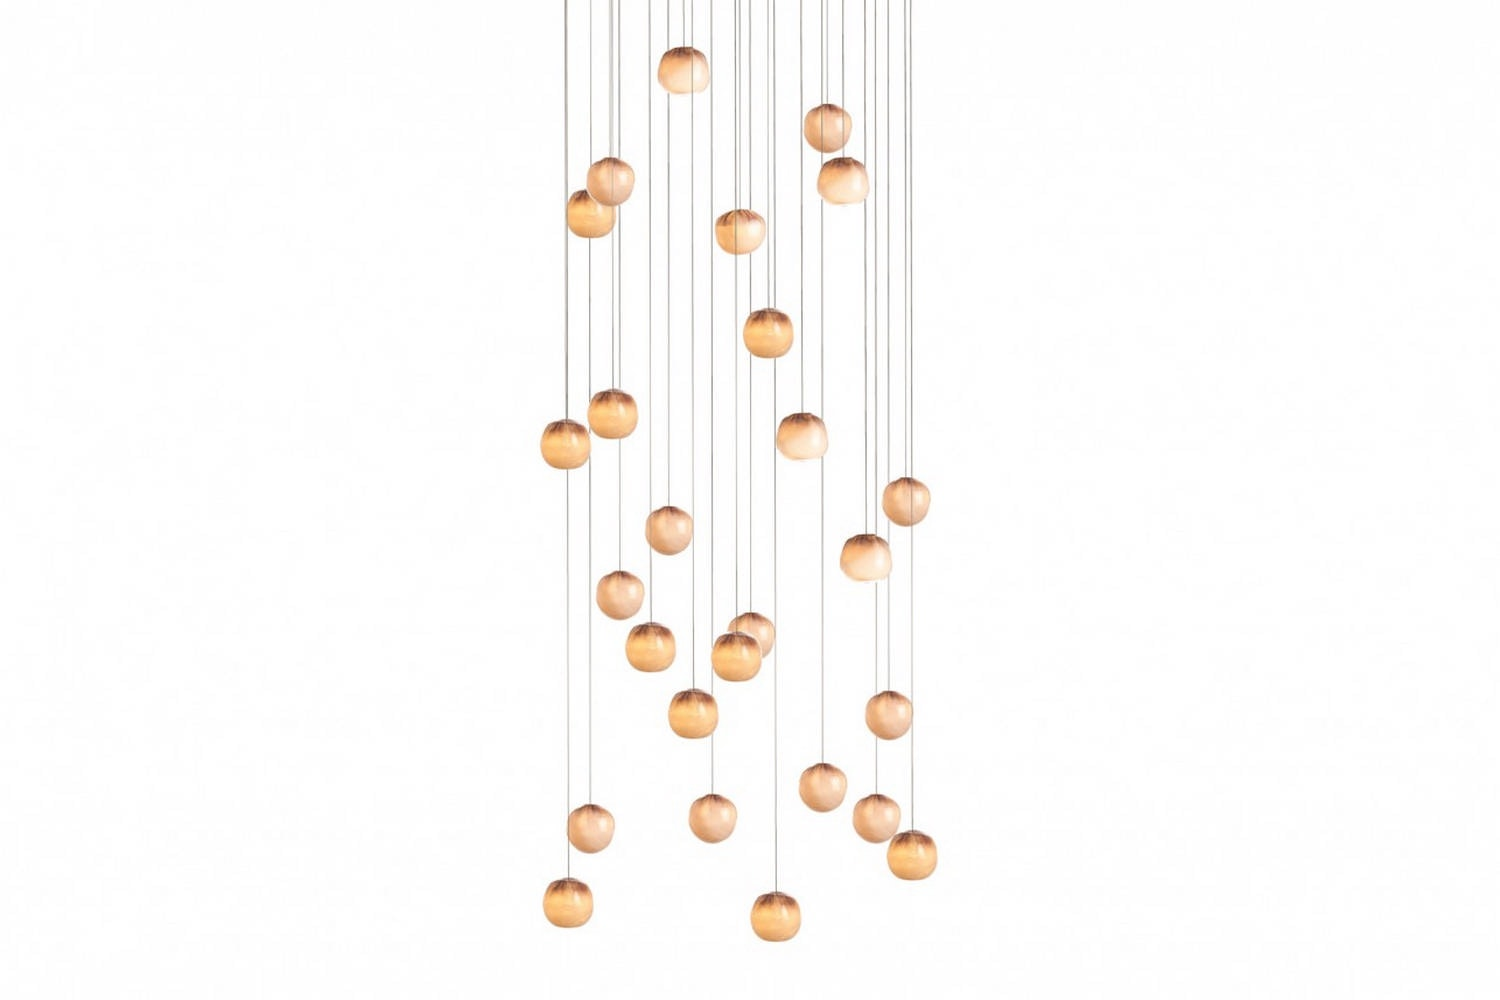 84.26 Suspension Lamp by Omer Arbel for Bocci